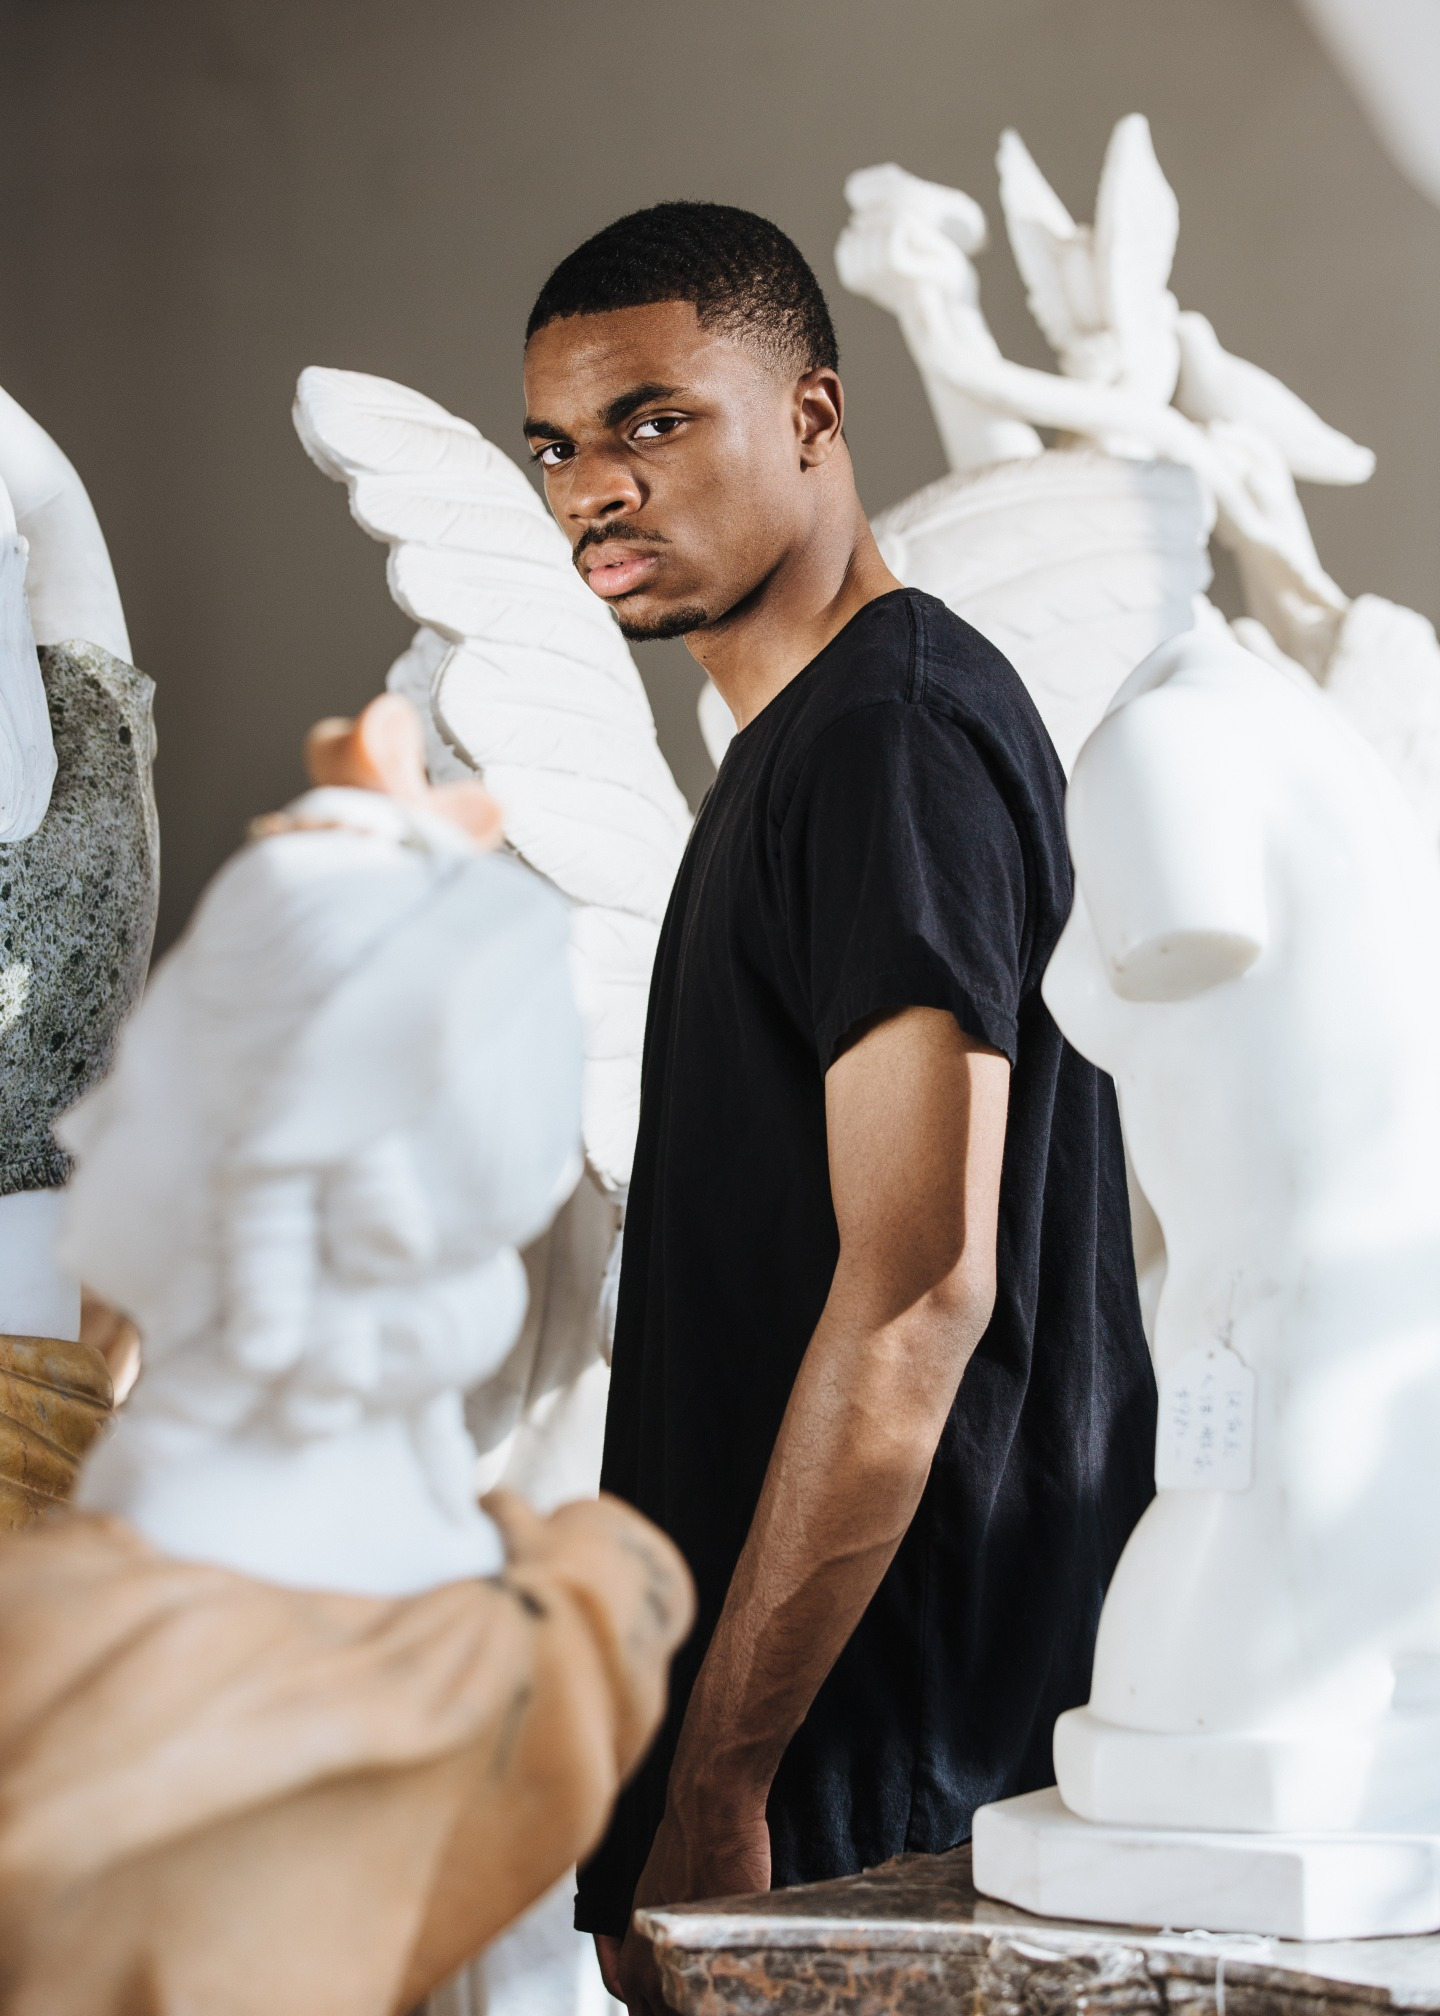 Vince Staples On Gang Culture Hip Hop And Steps Towards